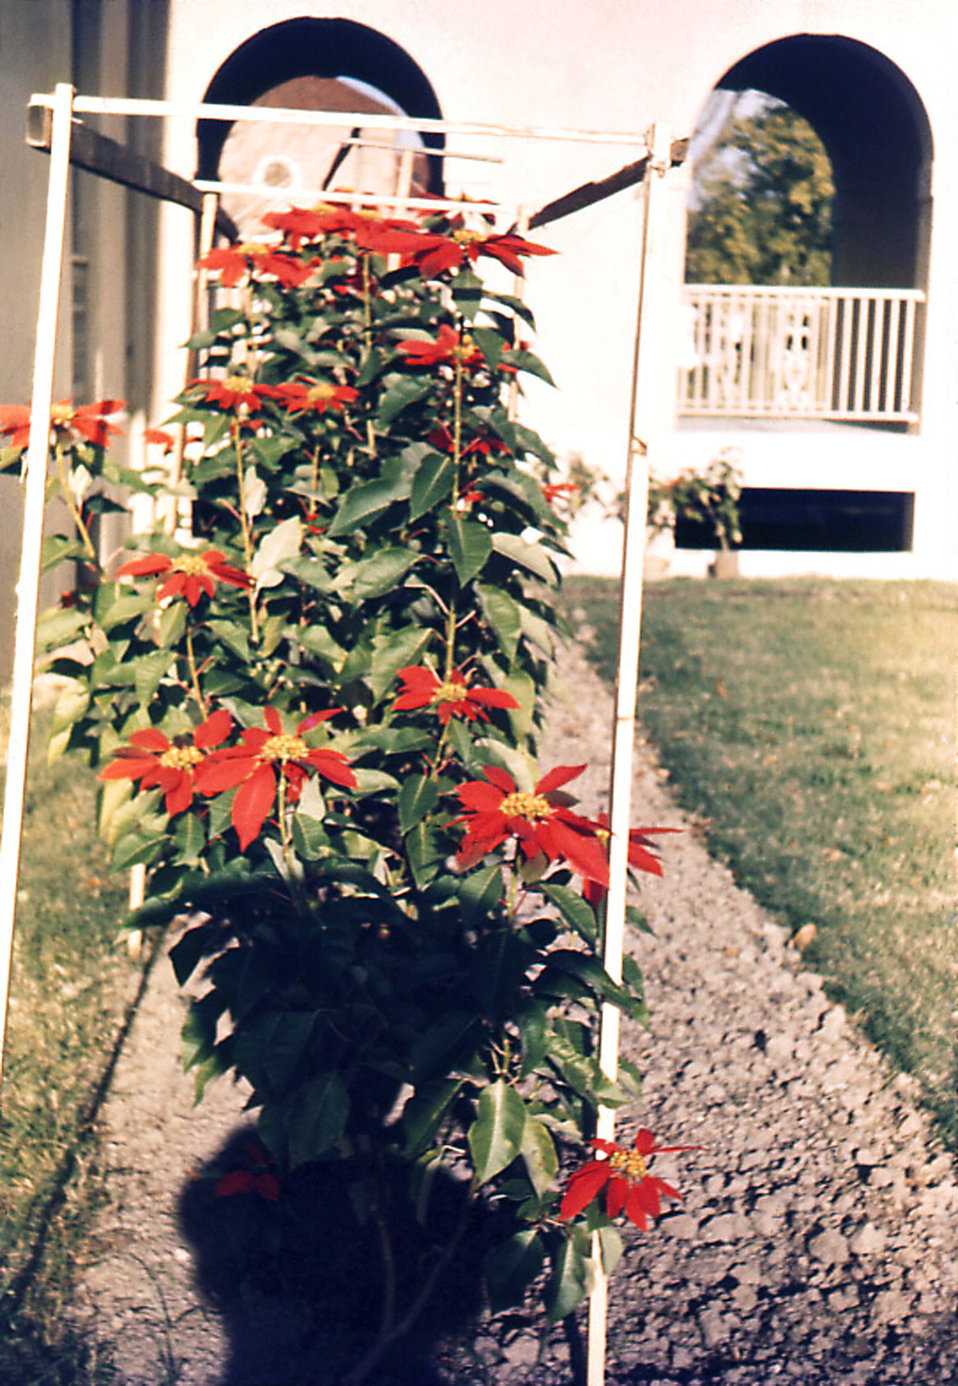 This historic image depicted a beautiful garden on the grounds of the Carville, Louisiana Leprosarium. A number of patients were wonderful g